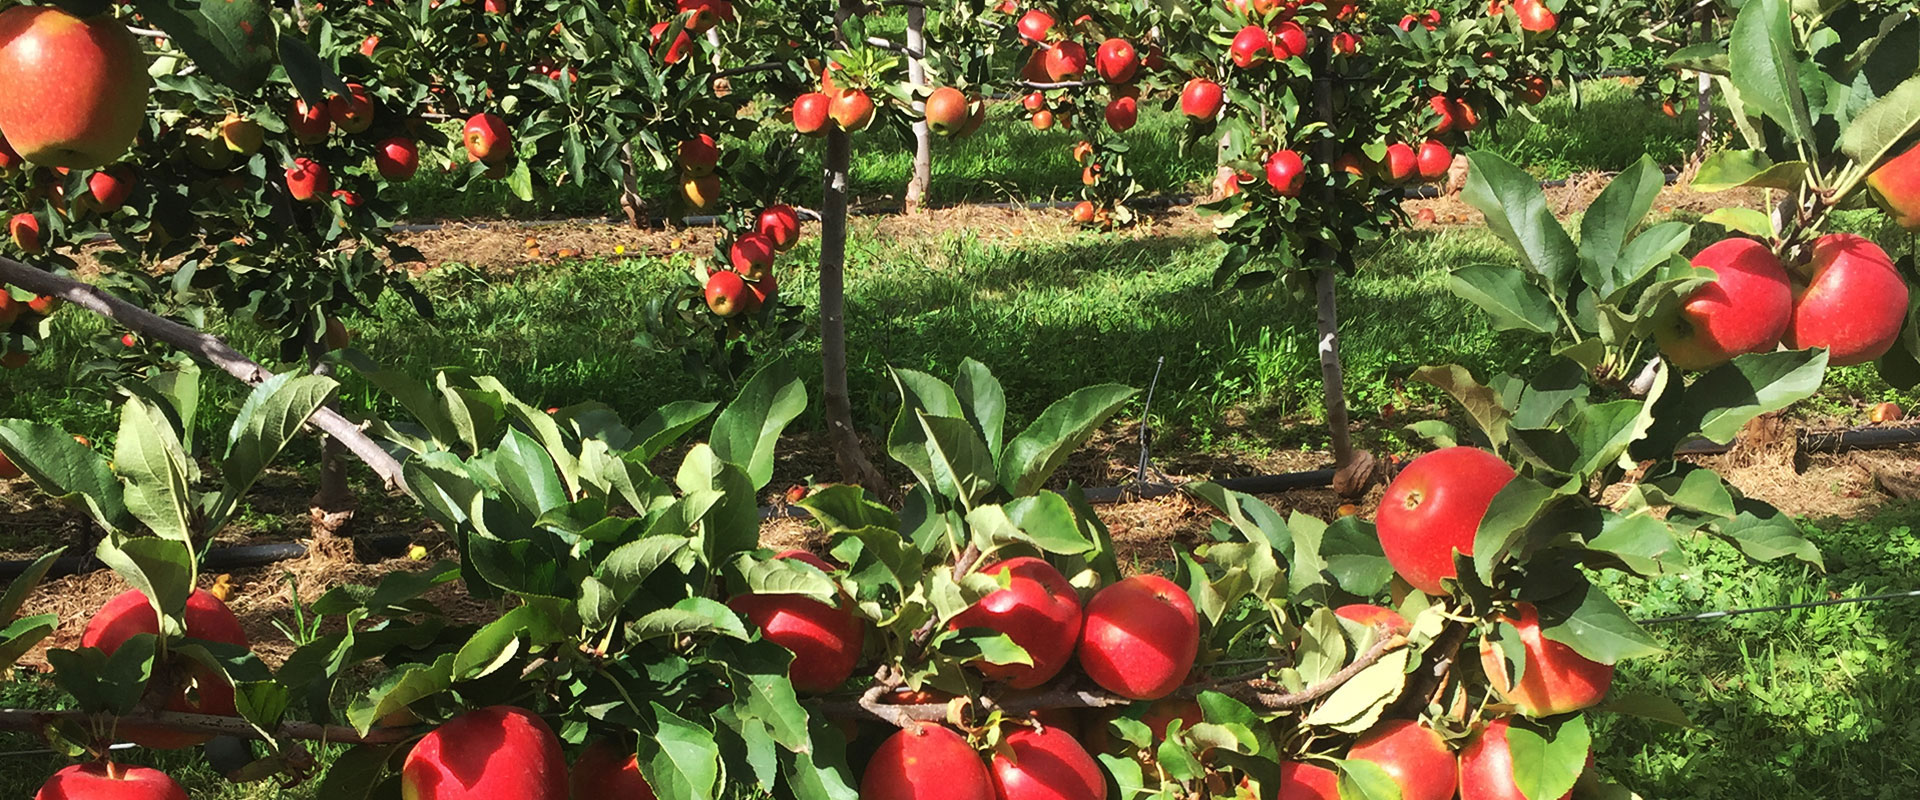 Pick Your Own Apples at TNT PRODUCE